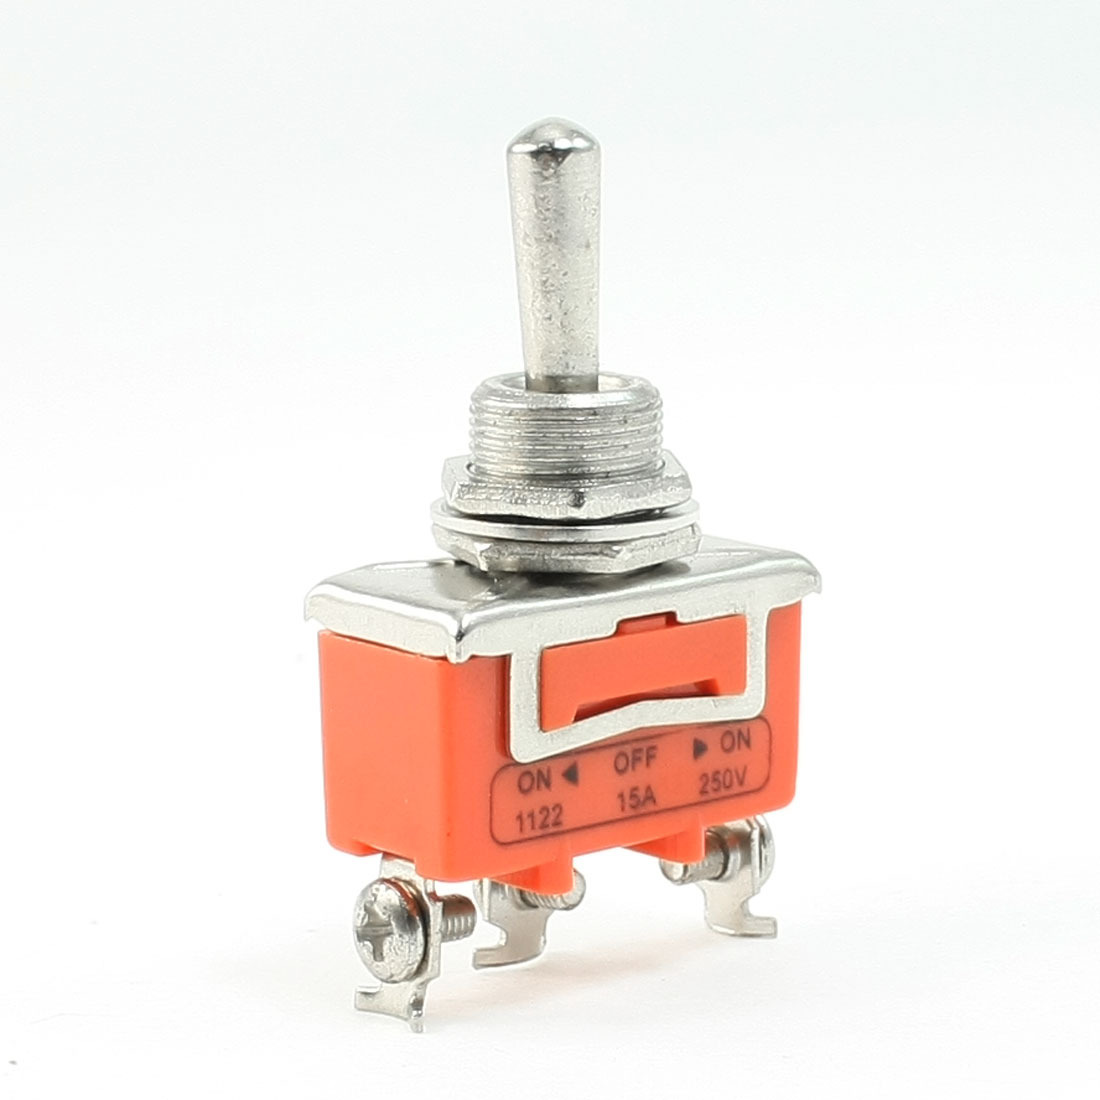 AC 250V 15A 3 Posittions Latching ON/OFF/ON SPST Toggle Switch